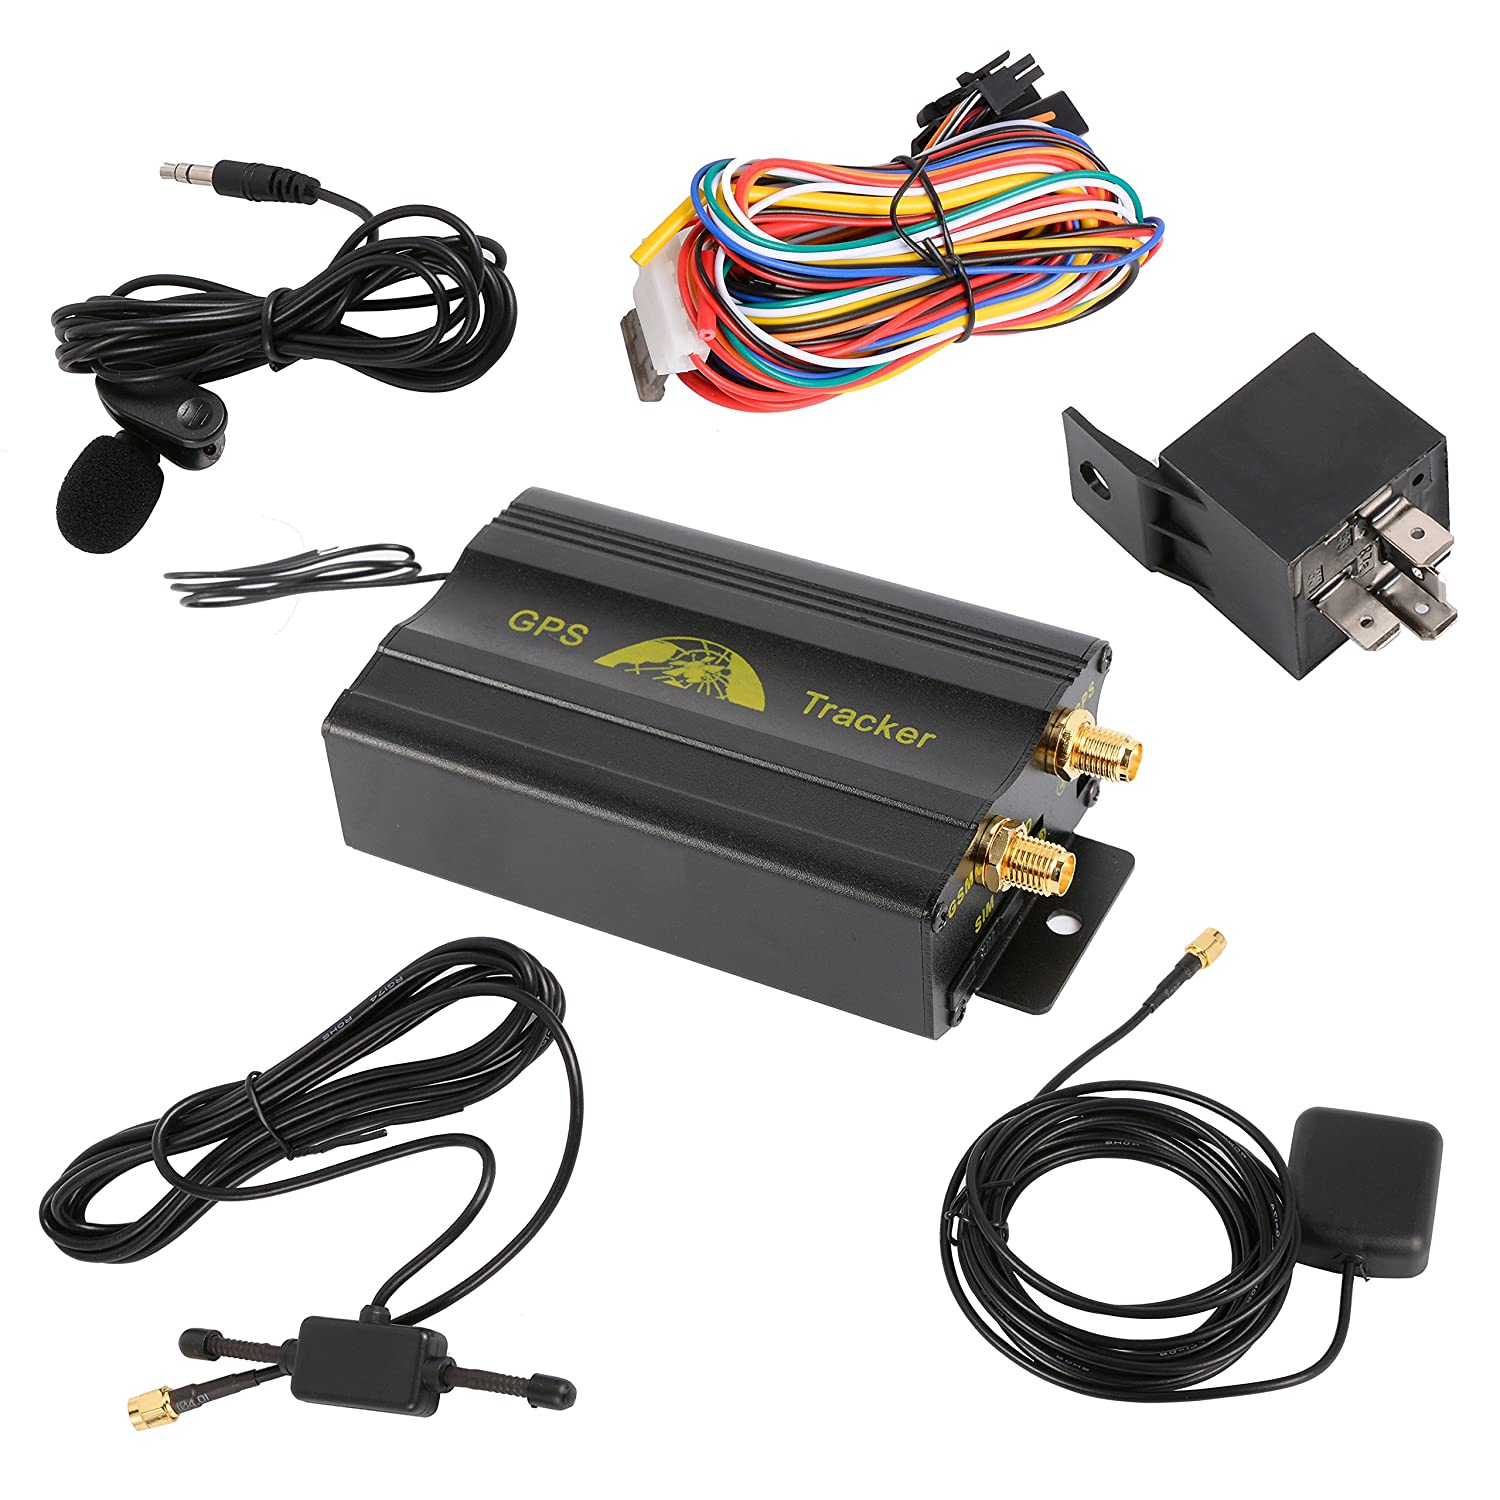 Gps car tracker with gprs and vehicle theft protection amazon co uk electronics